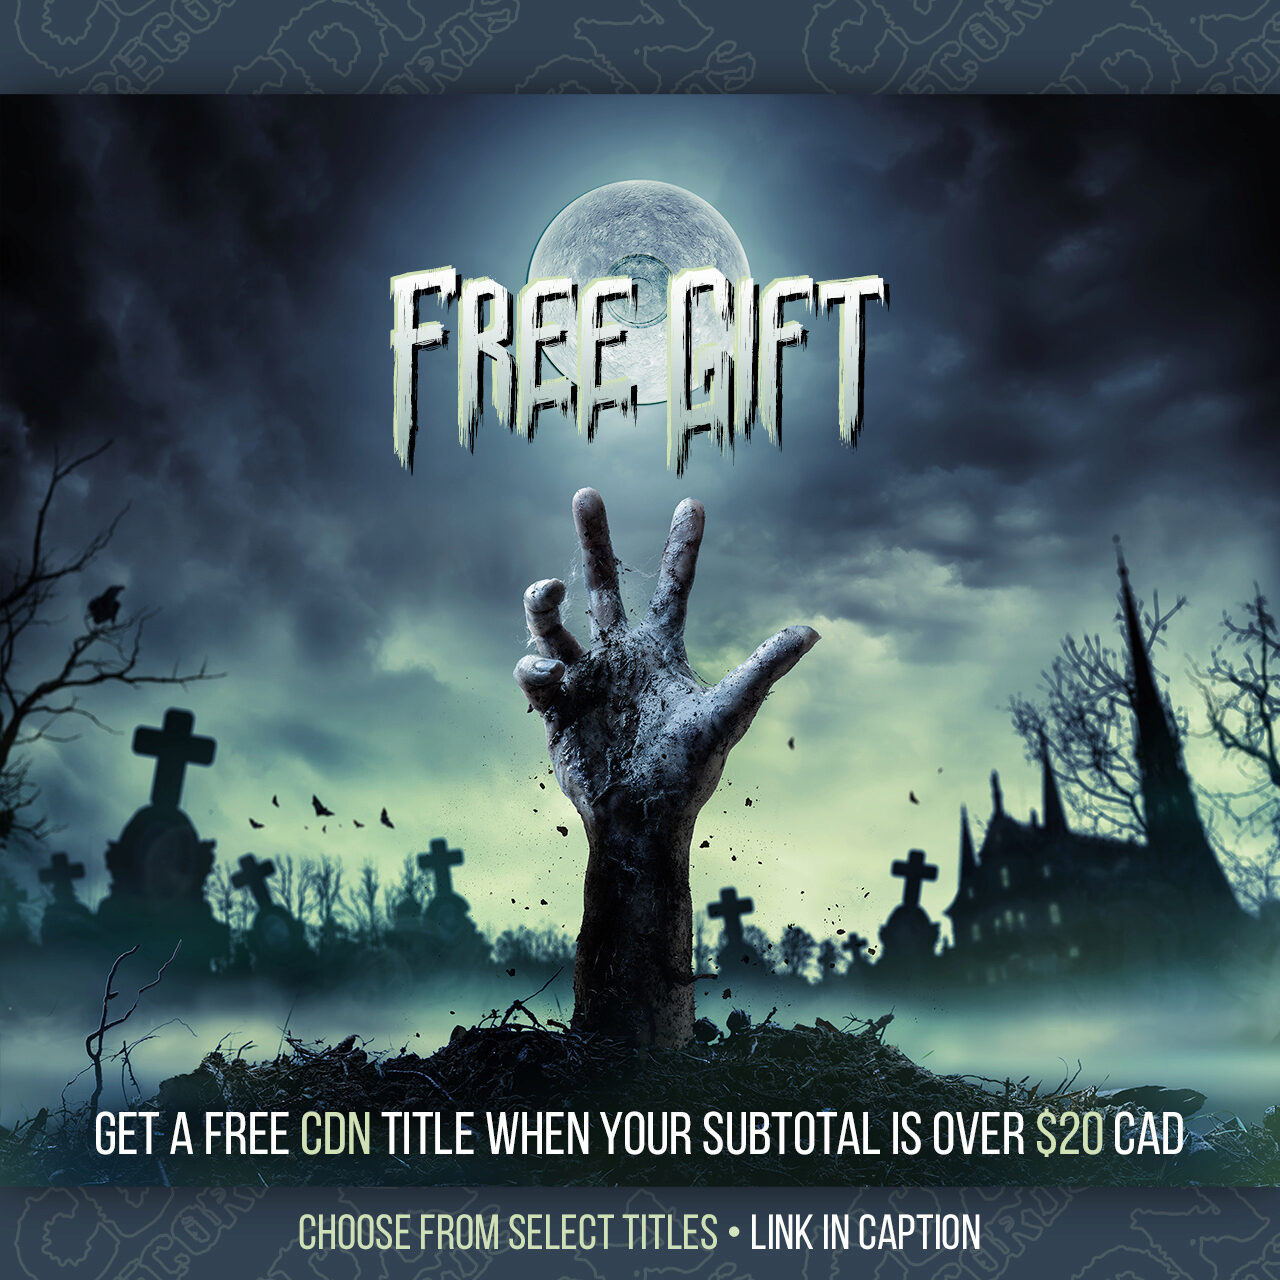 promo graphic for the Free Gift offer